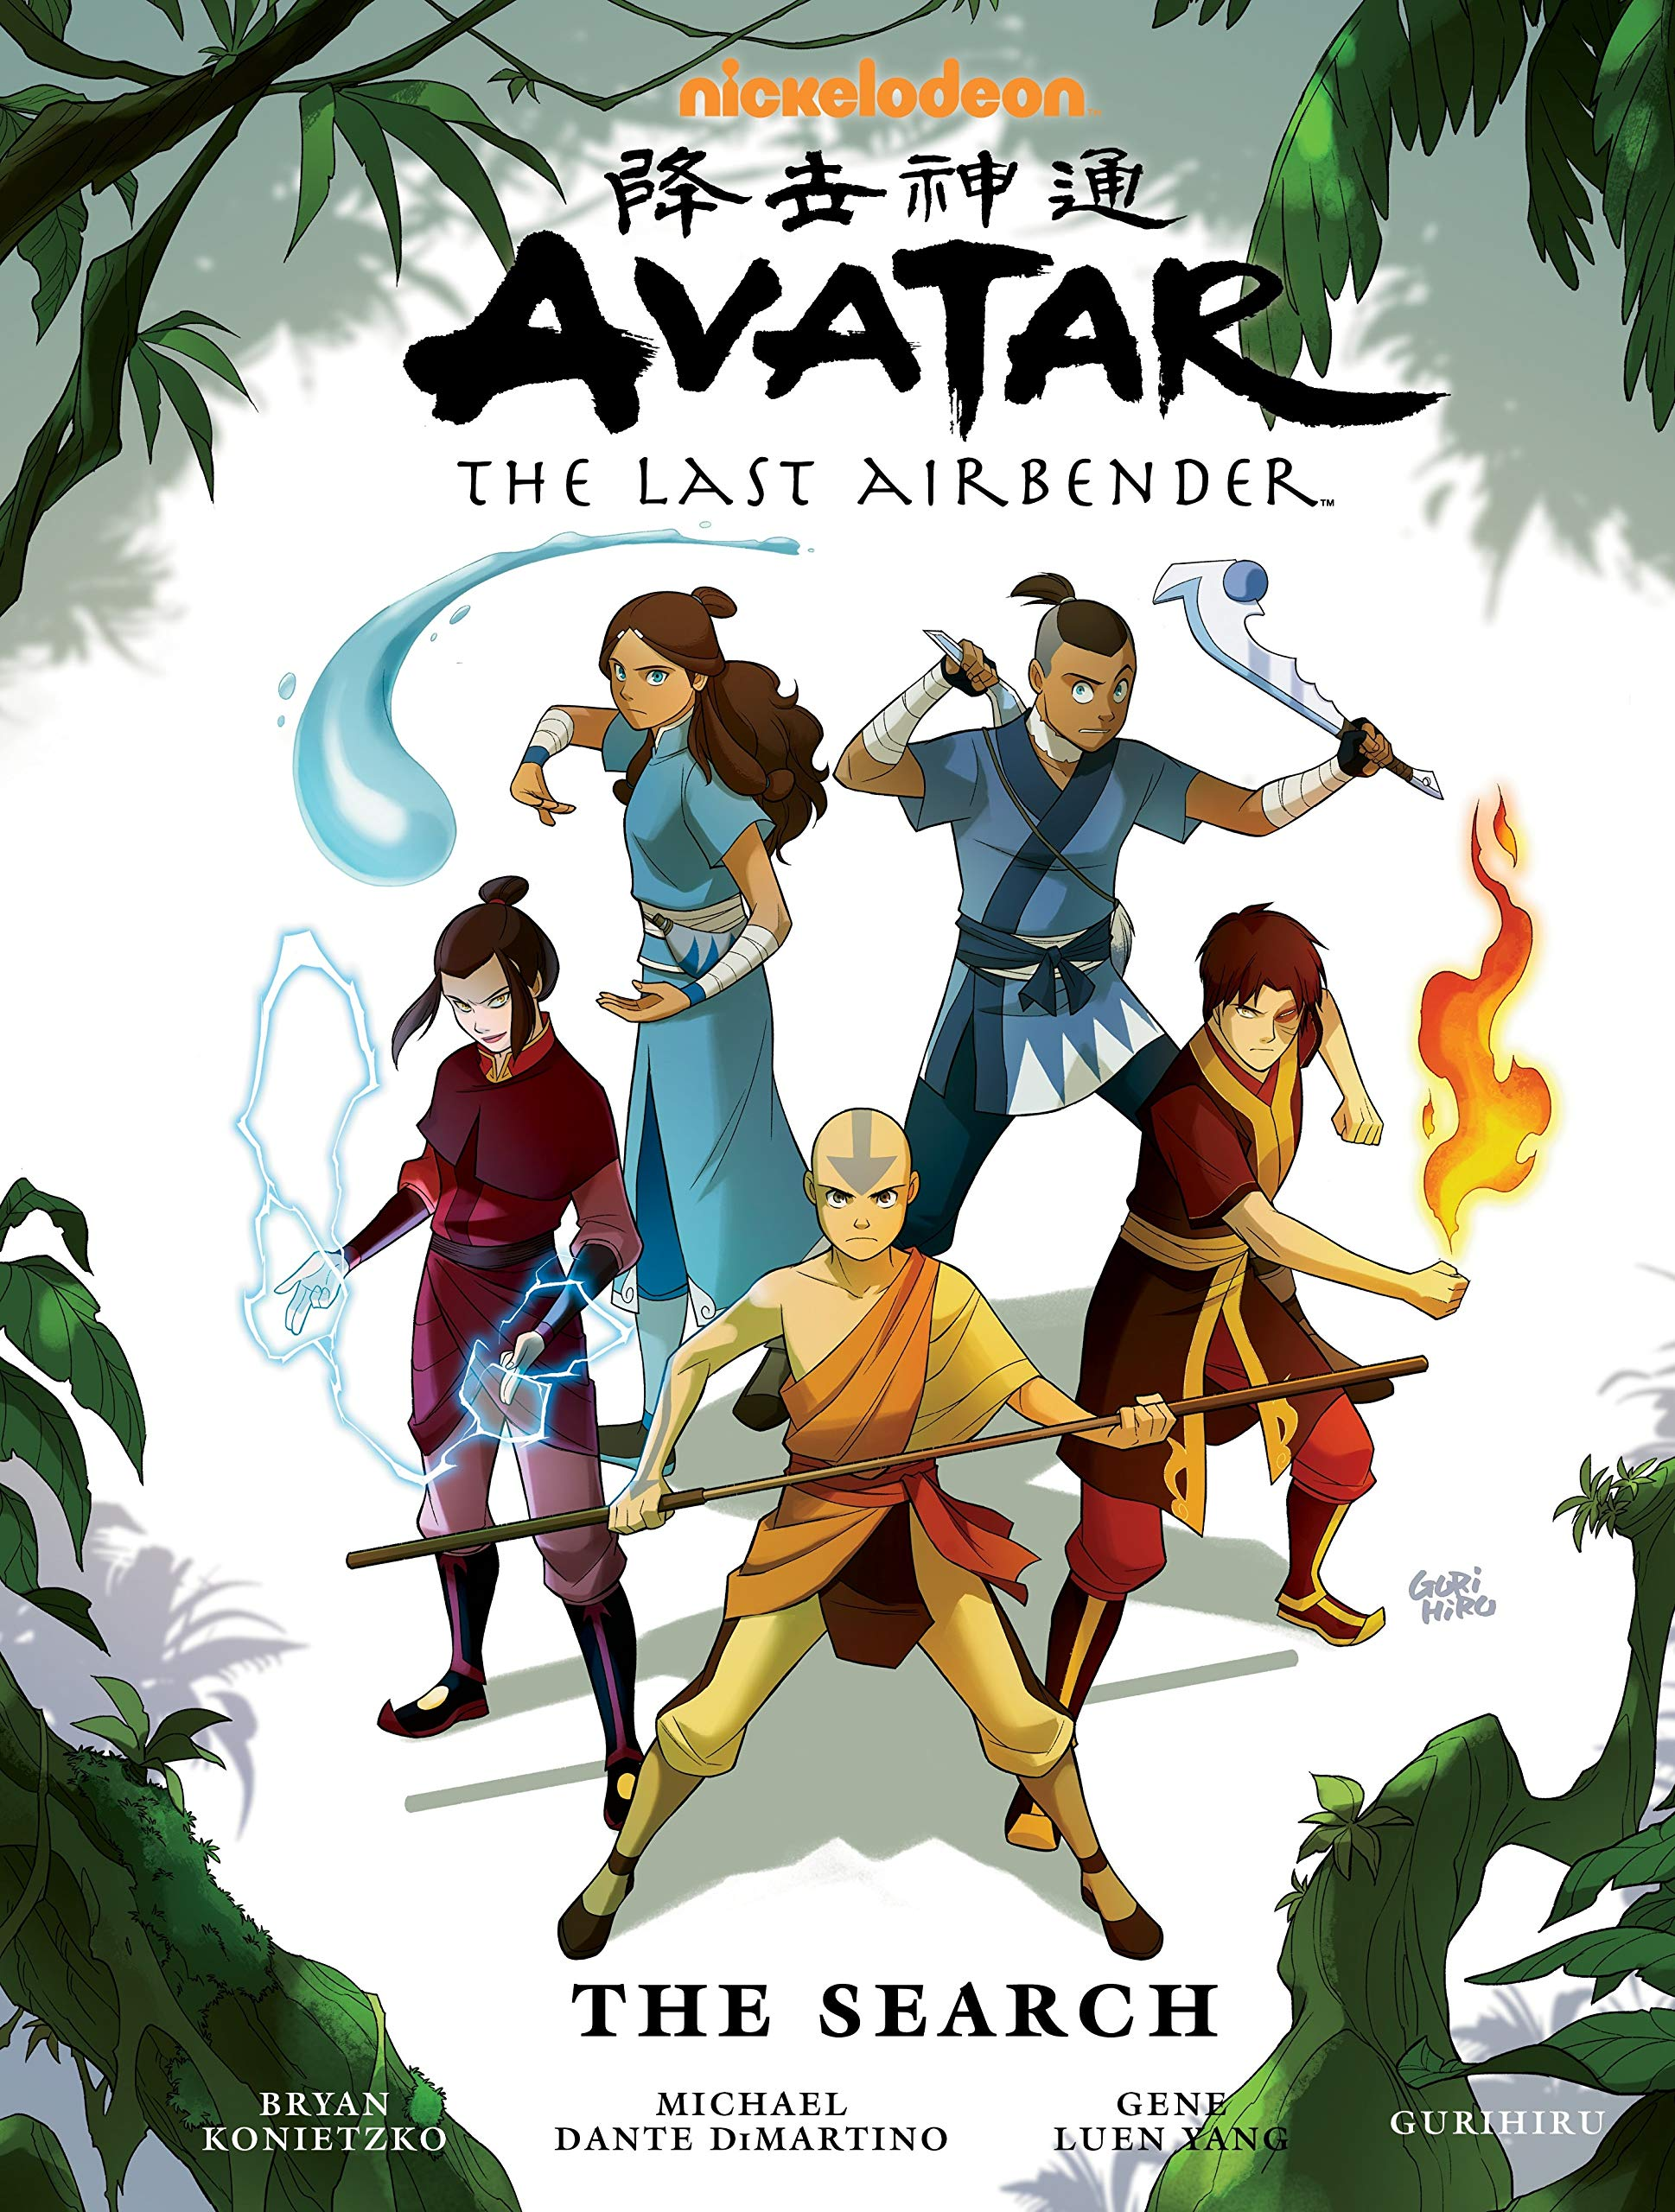 Avatar: The Last Airbender, The Search by Nickelodeon